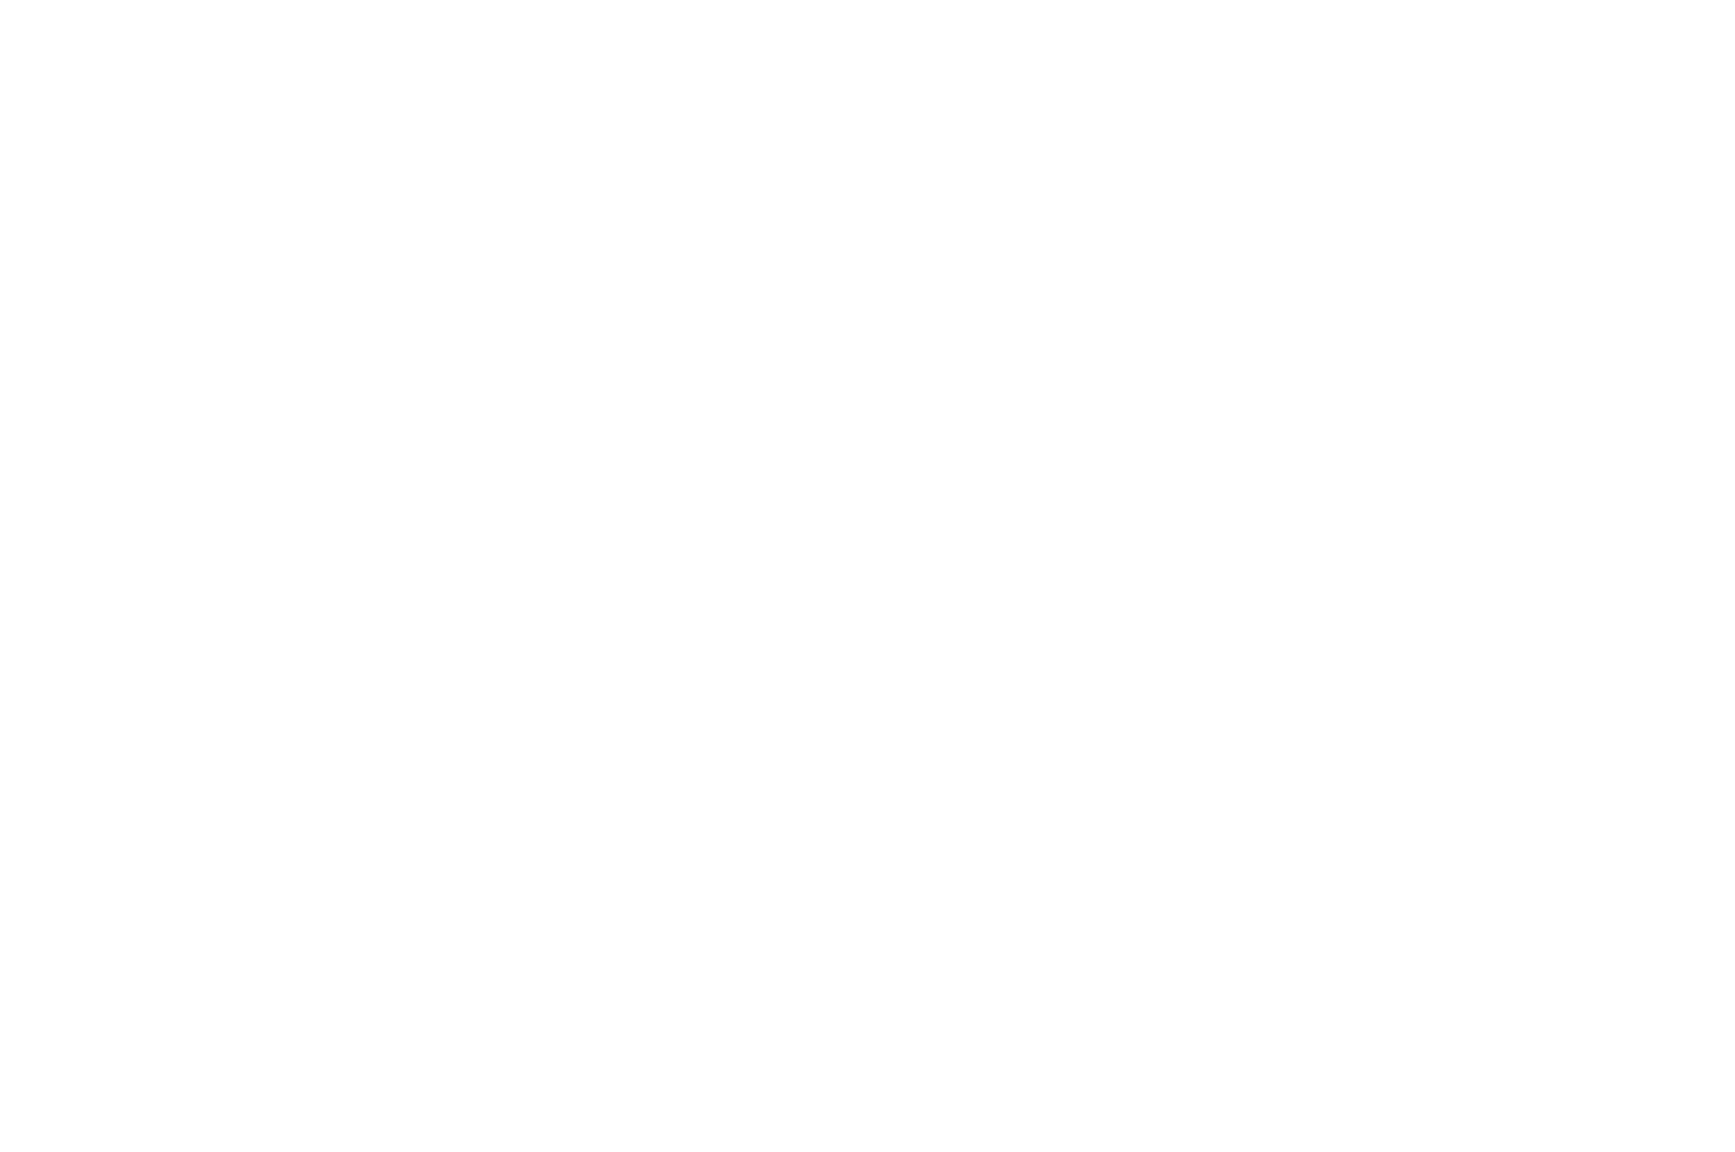 OFFICIAL SELECTION - Queen Palm International Film Festival - 2021